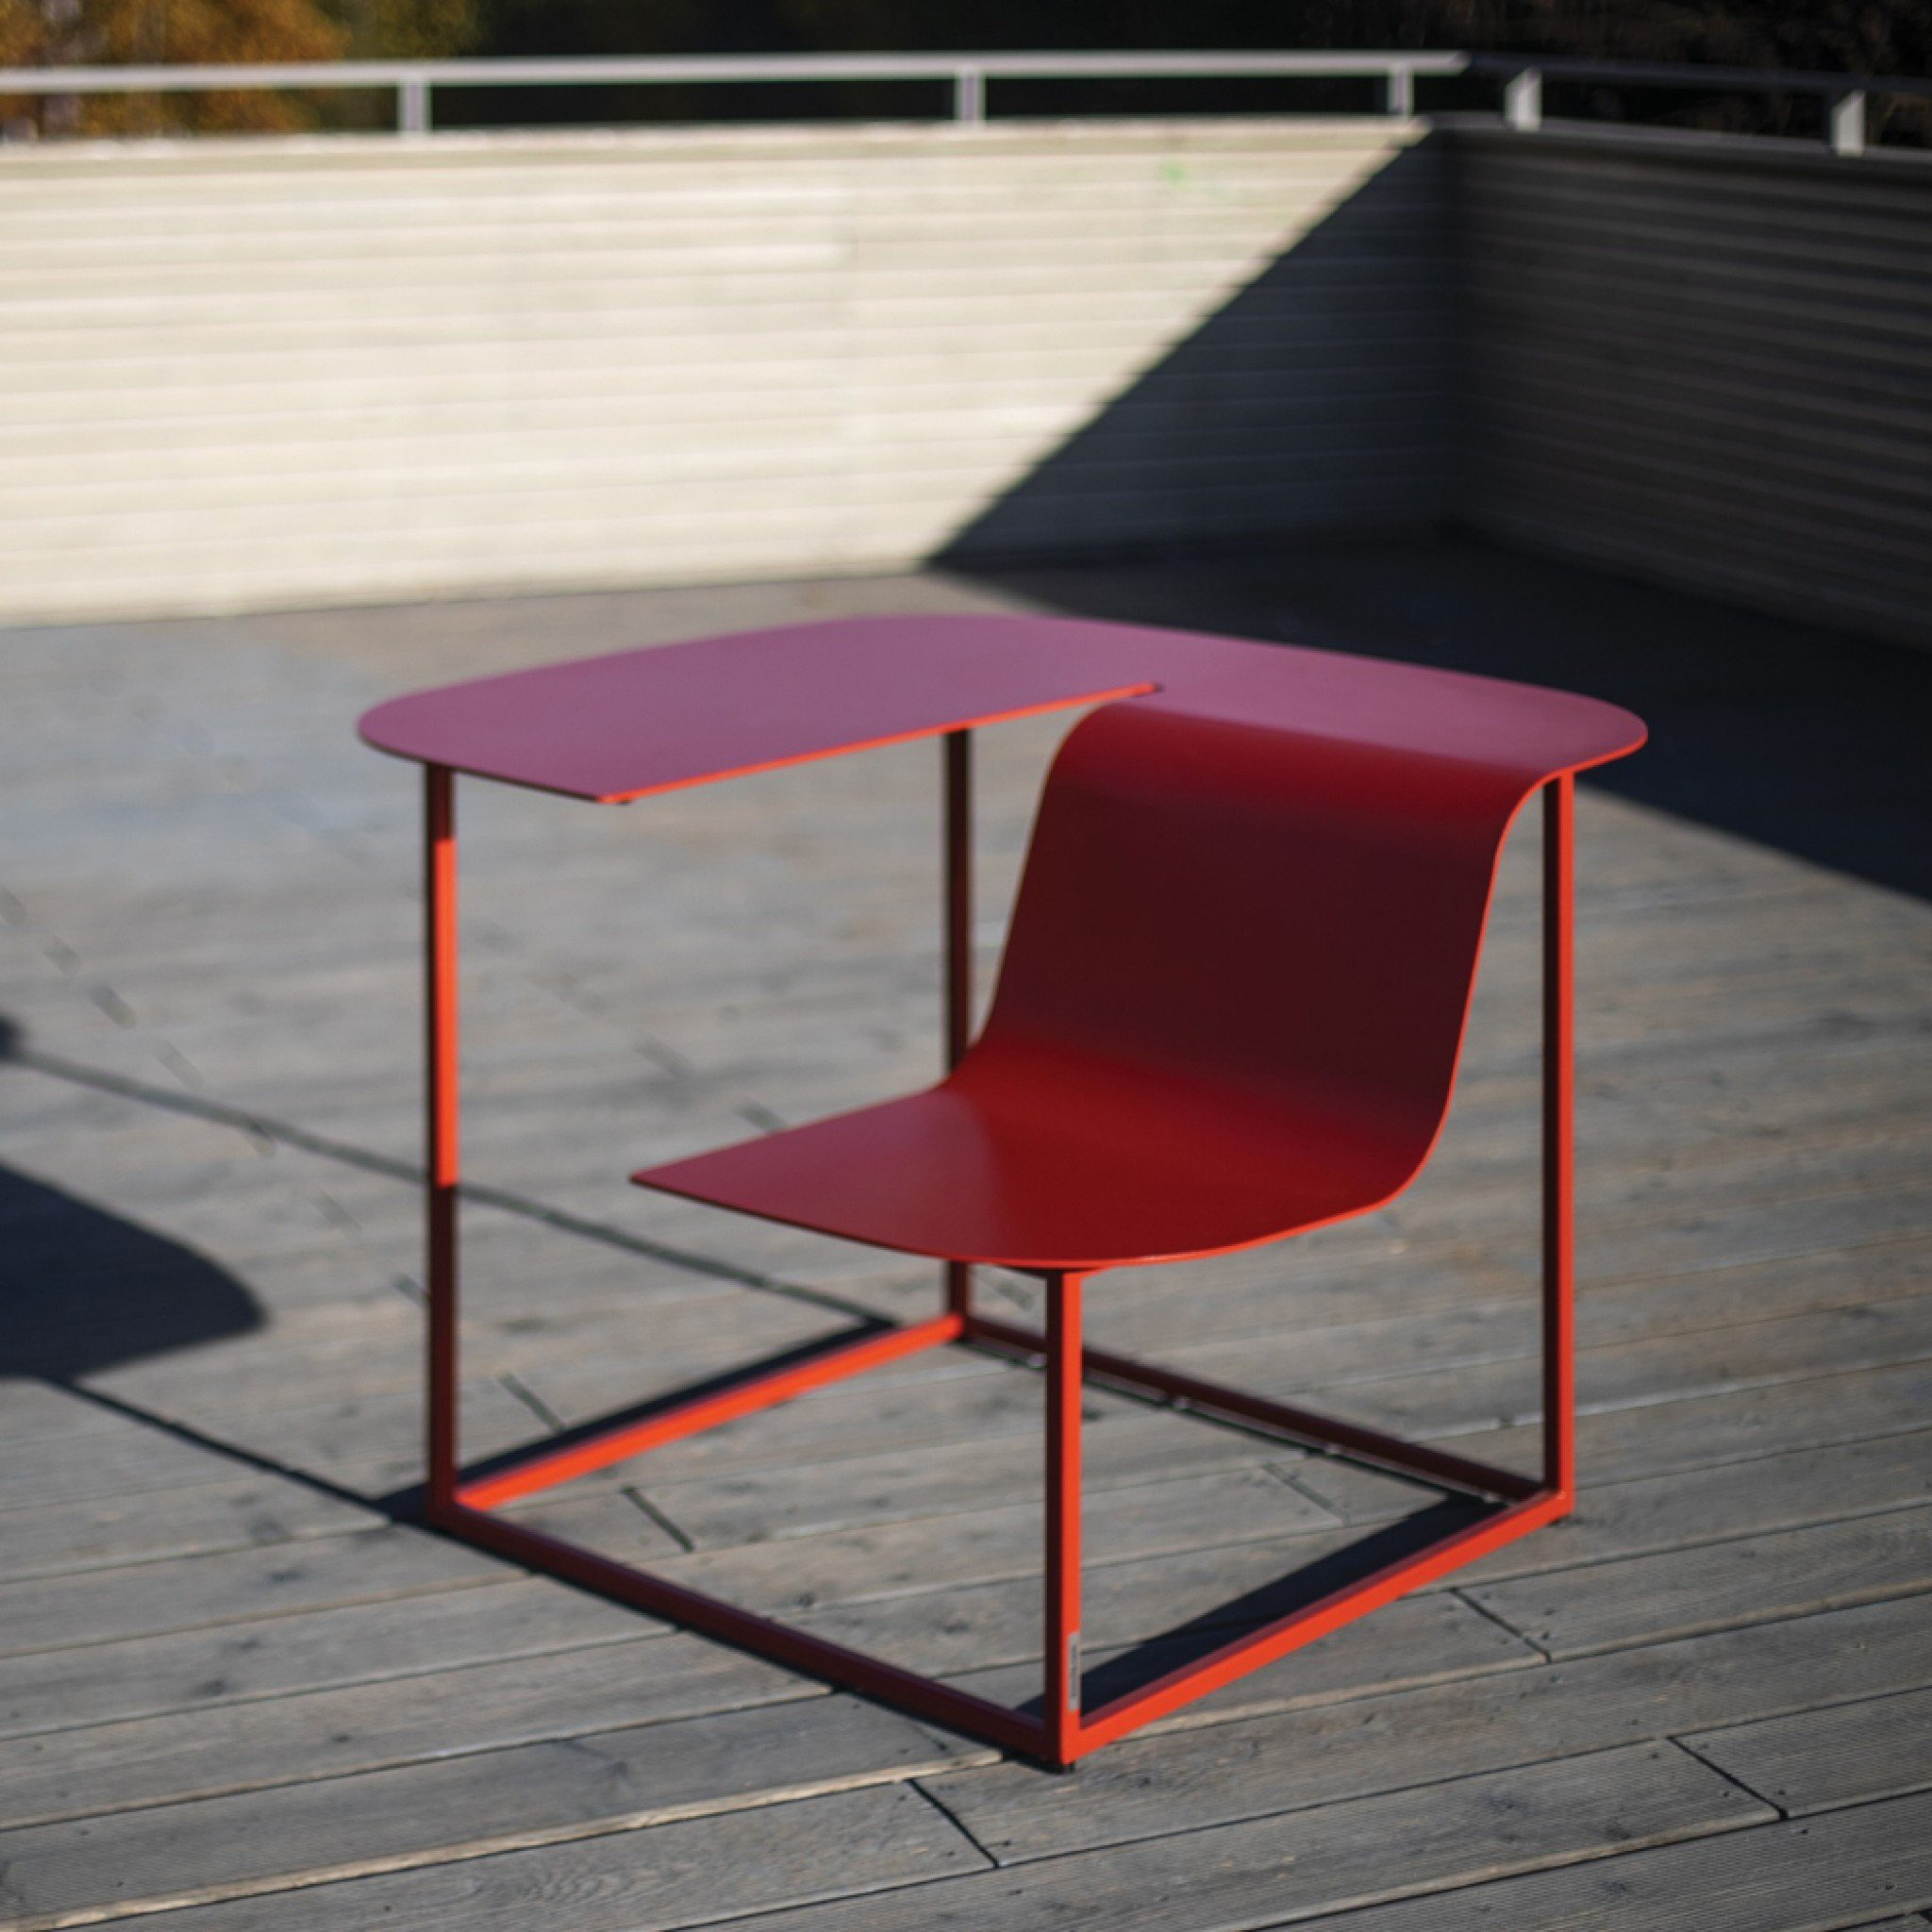 Manta outdoor seating element